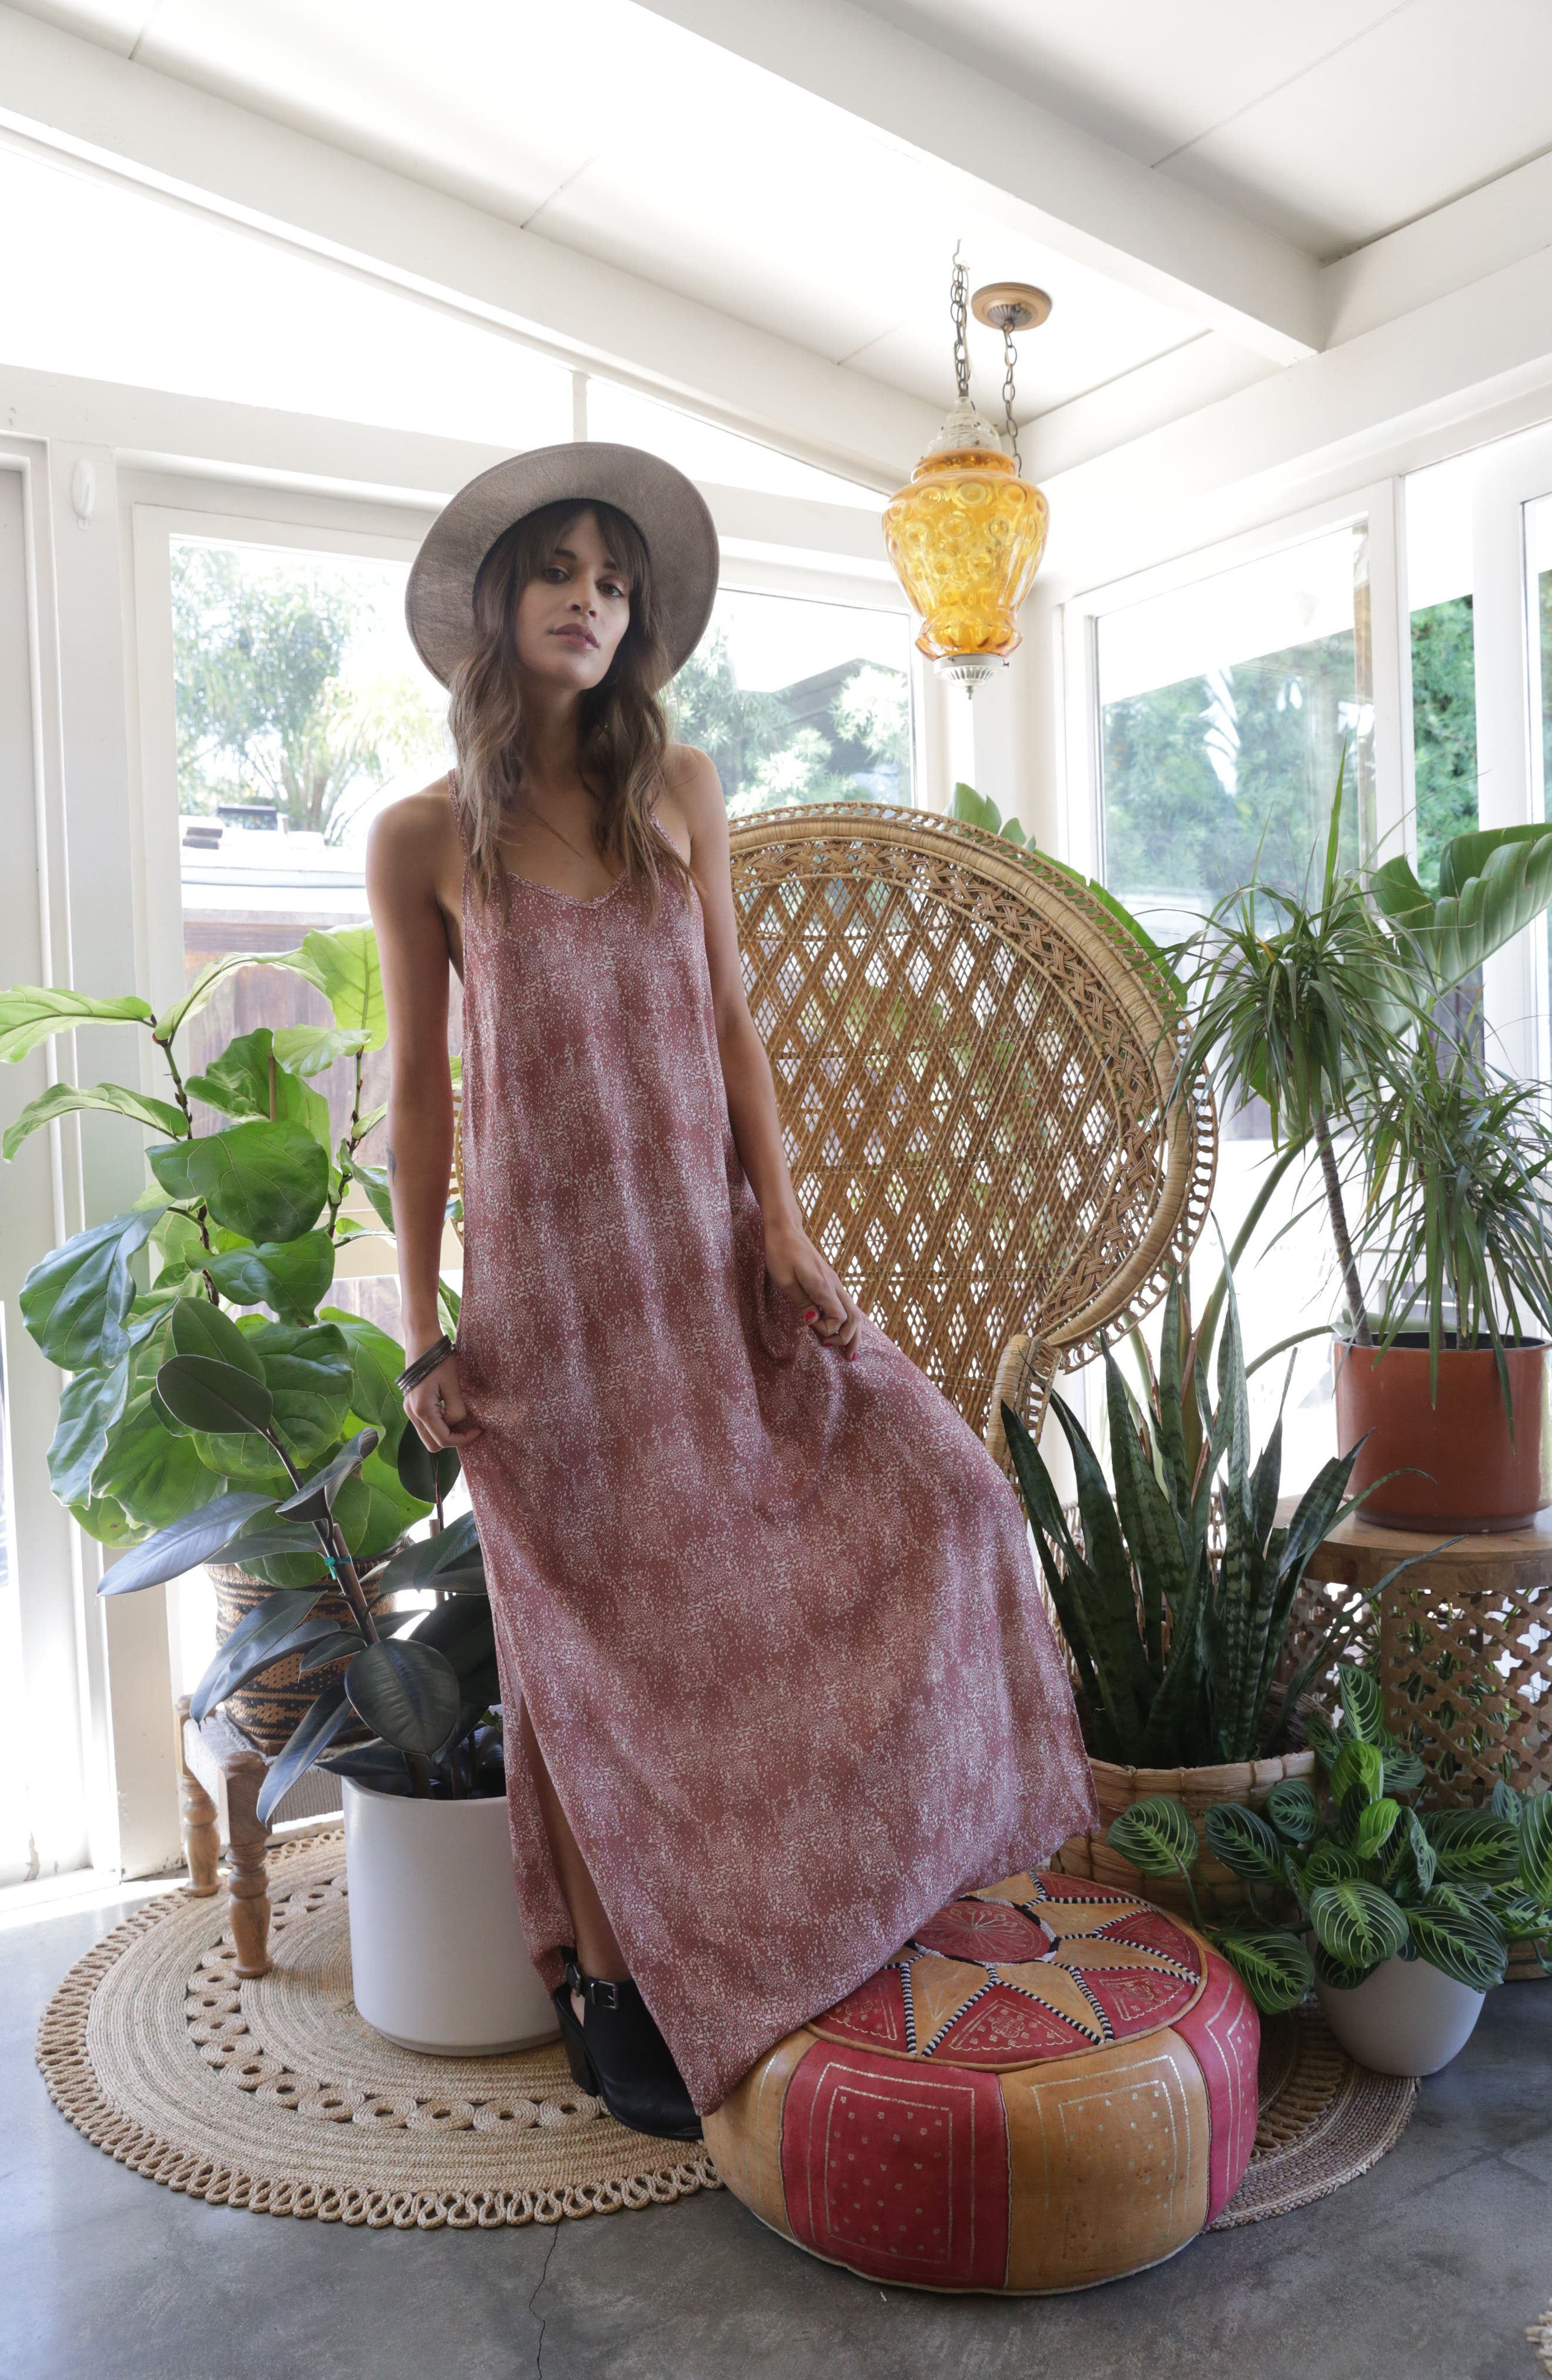 Misty Morning Maxi Dress,                             Alternate thumbnail 8, color,                             DEW